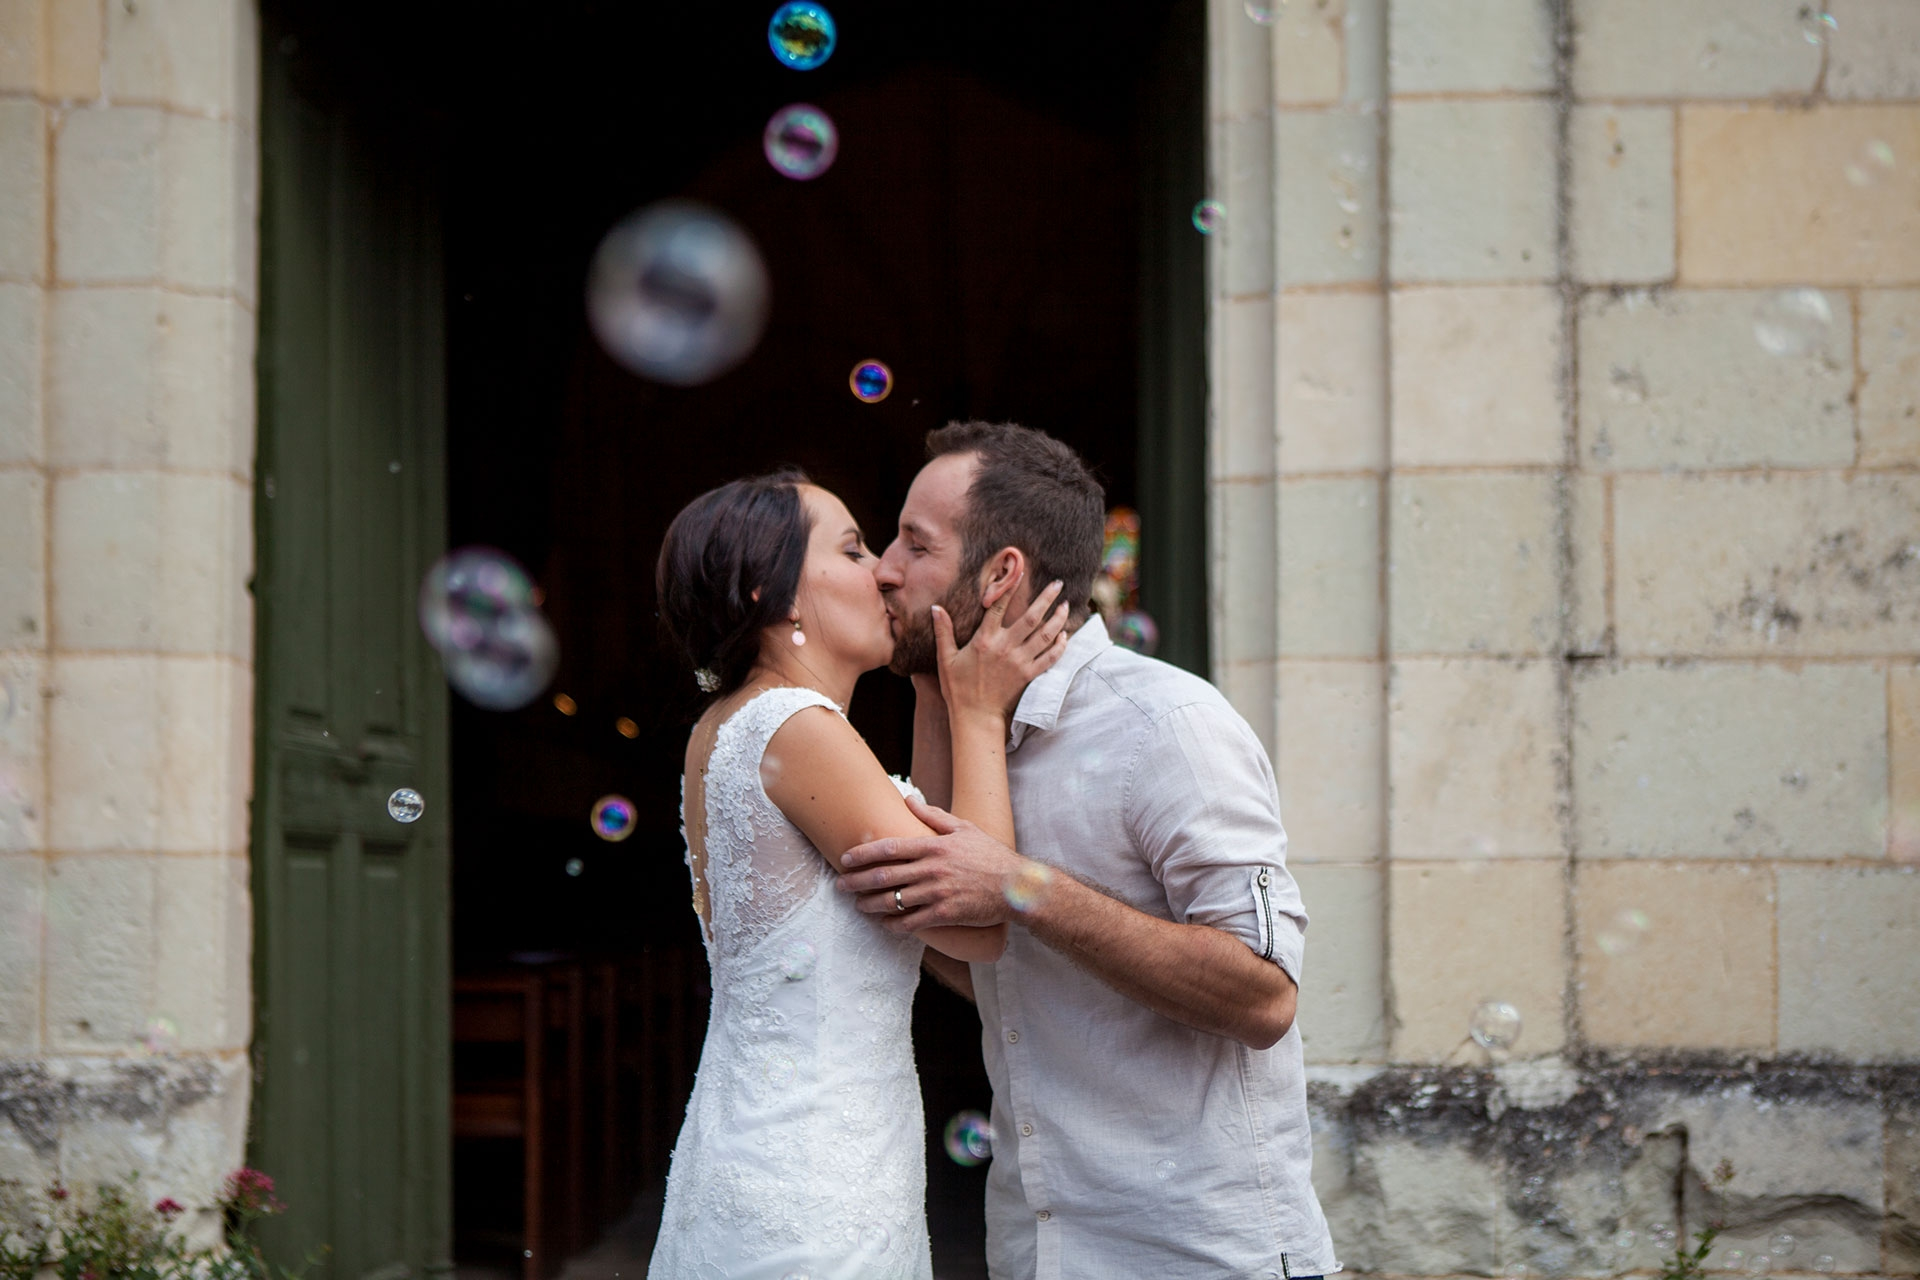 particuliers-evenements-mariage-oui-carla&jeremy-57